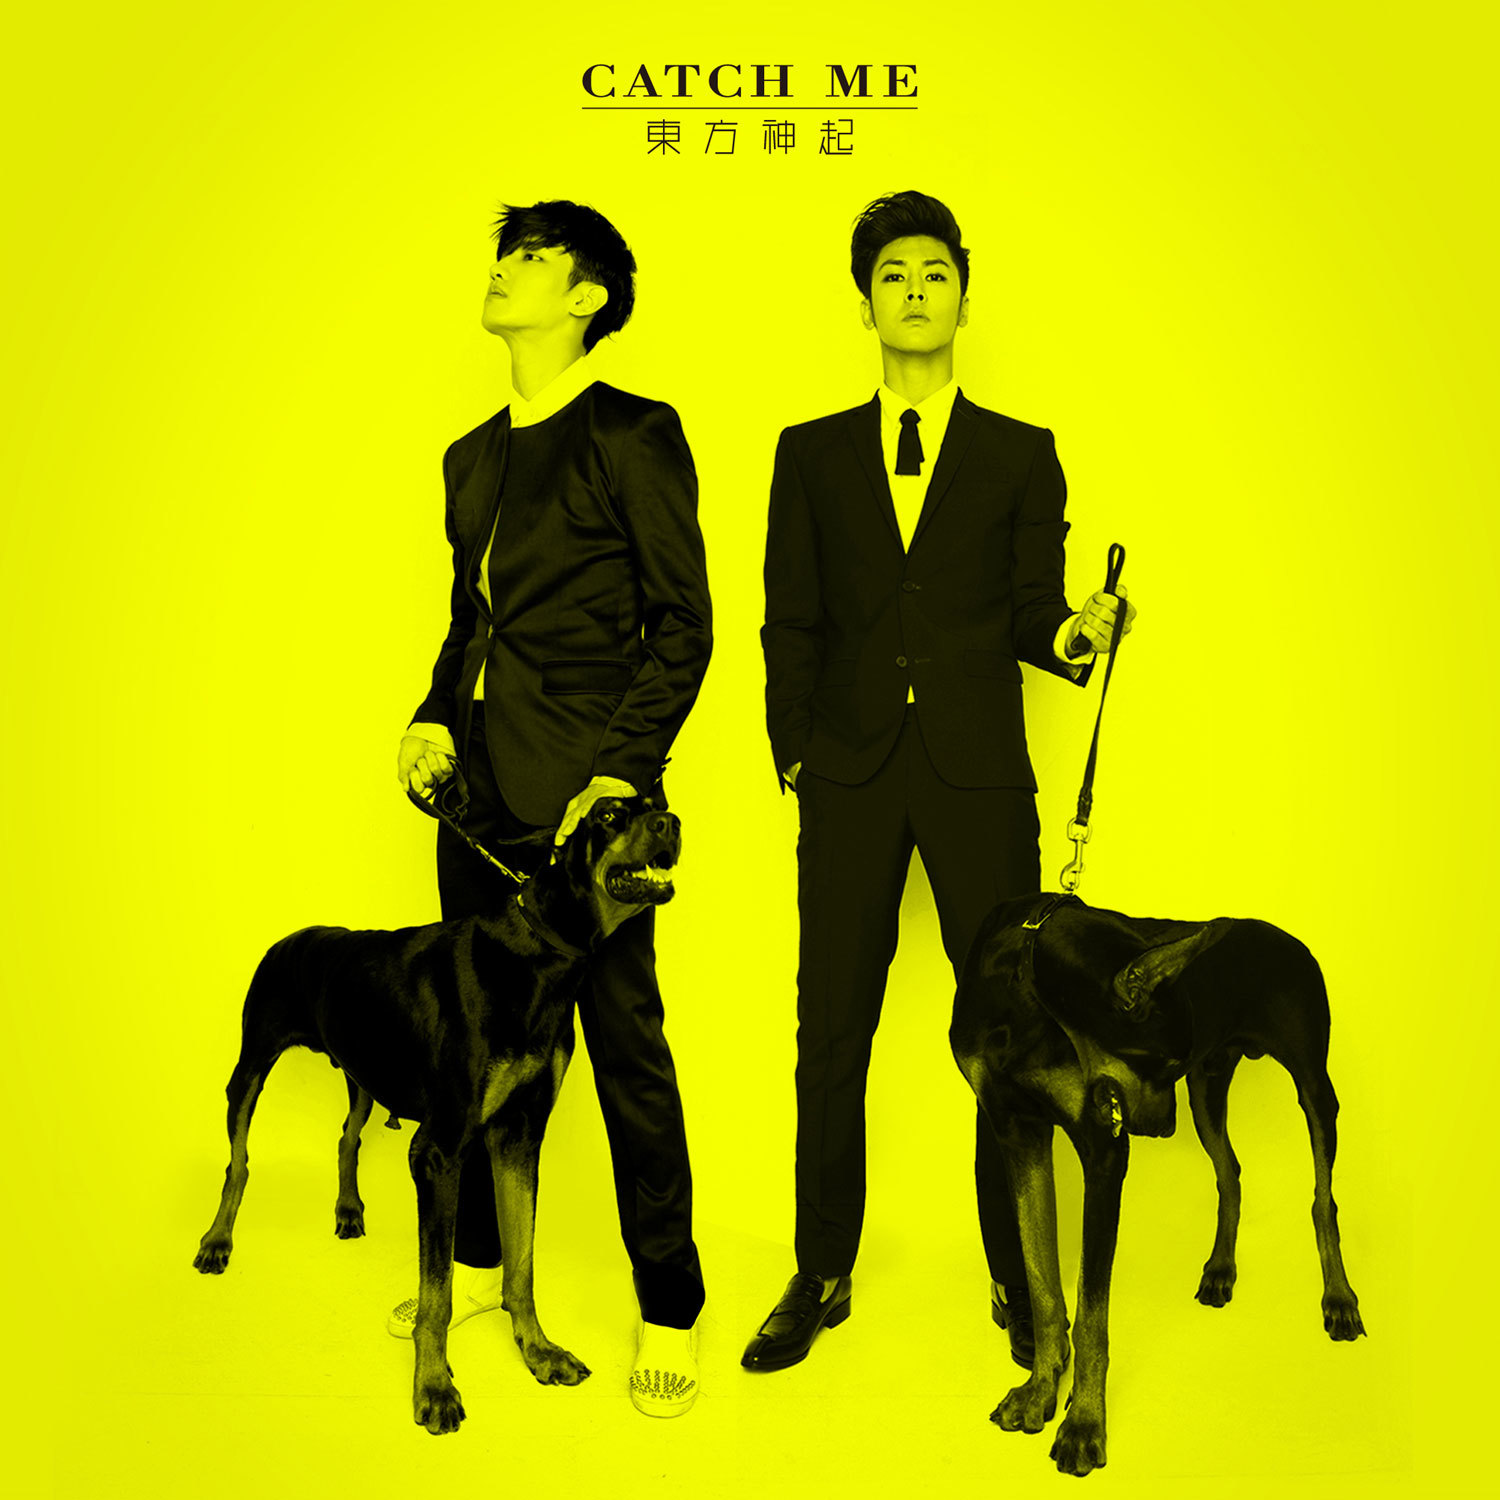 [Album] TVXQ (DBSK) - Catch Me [VOL. 6]